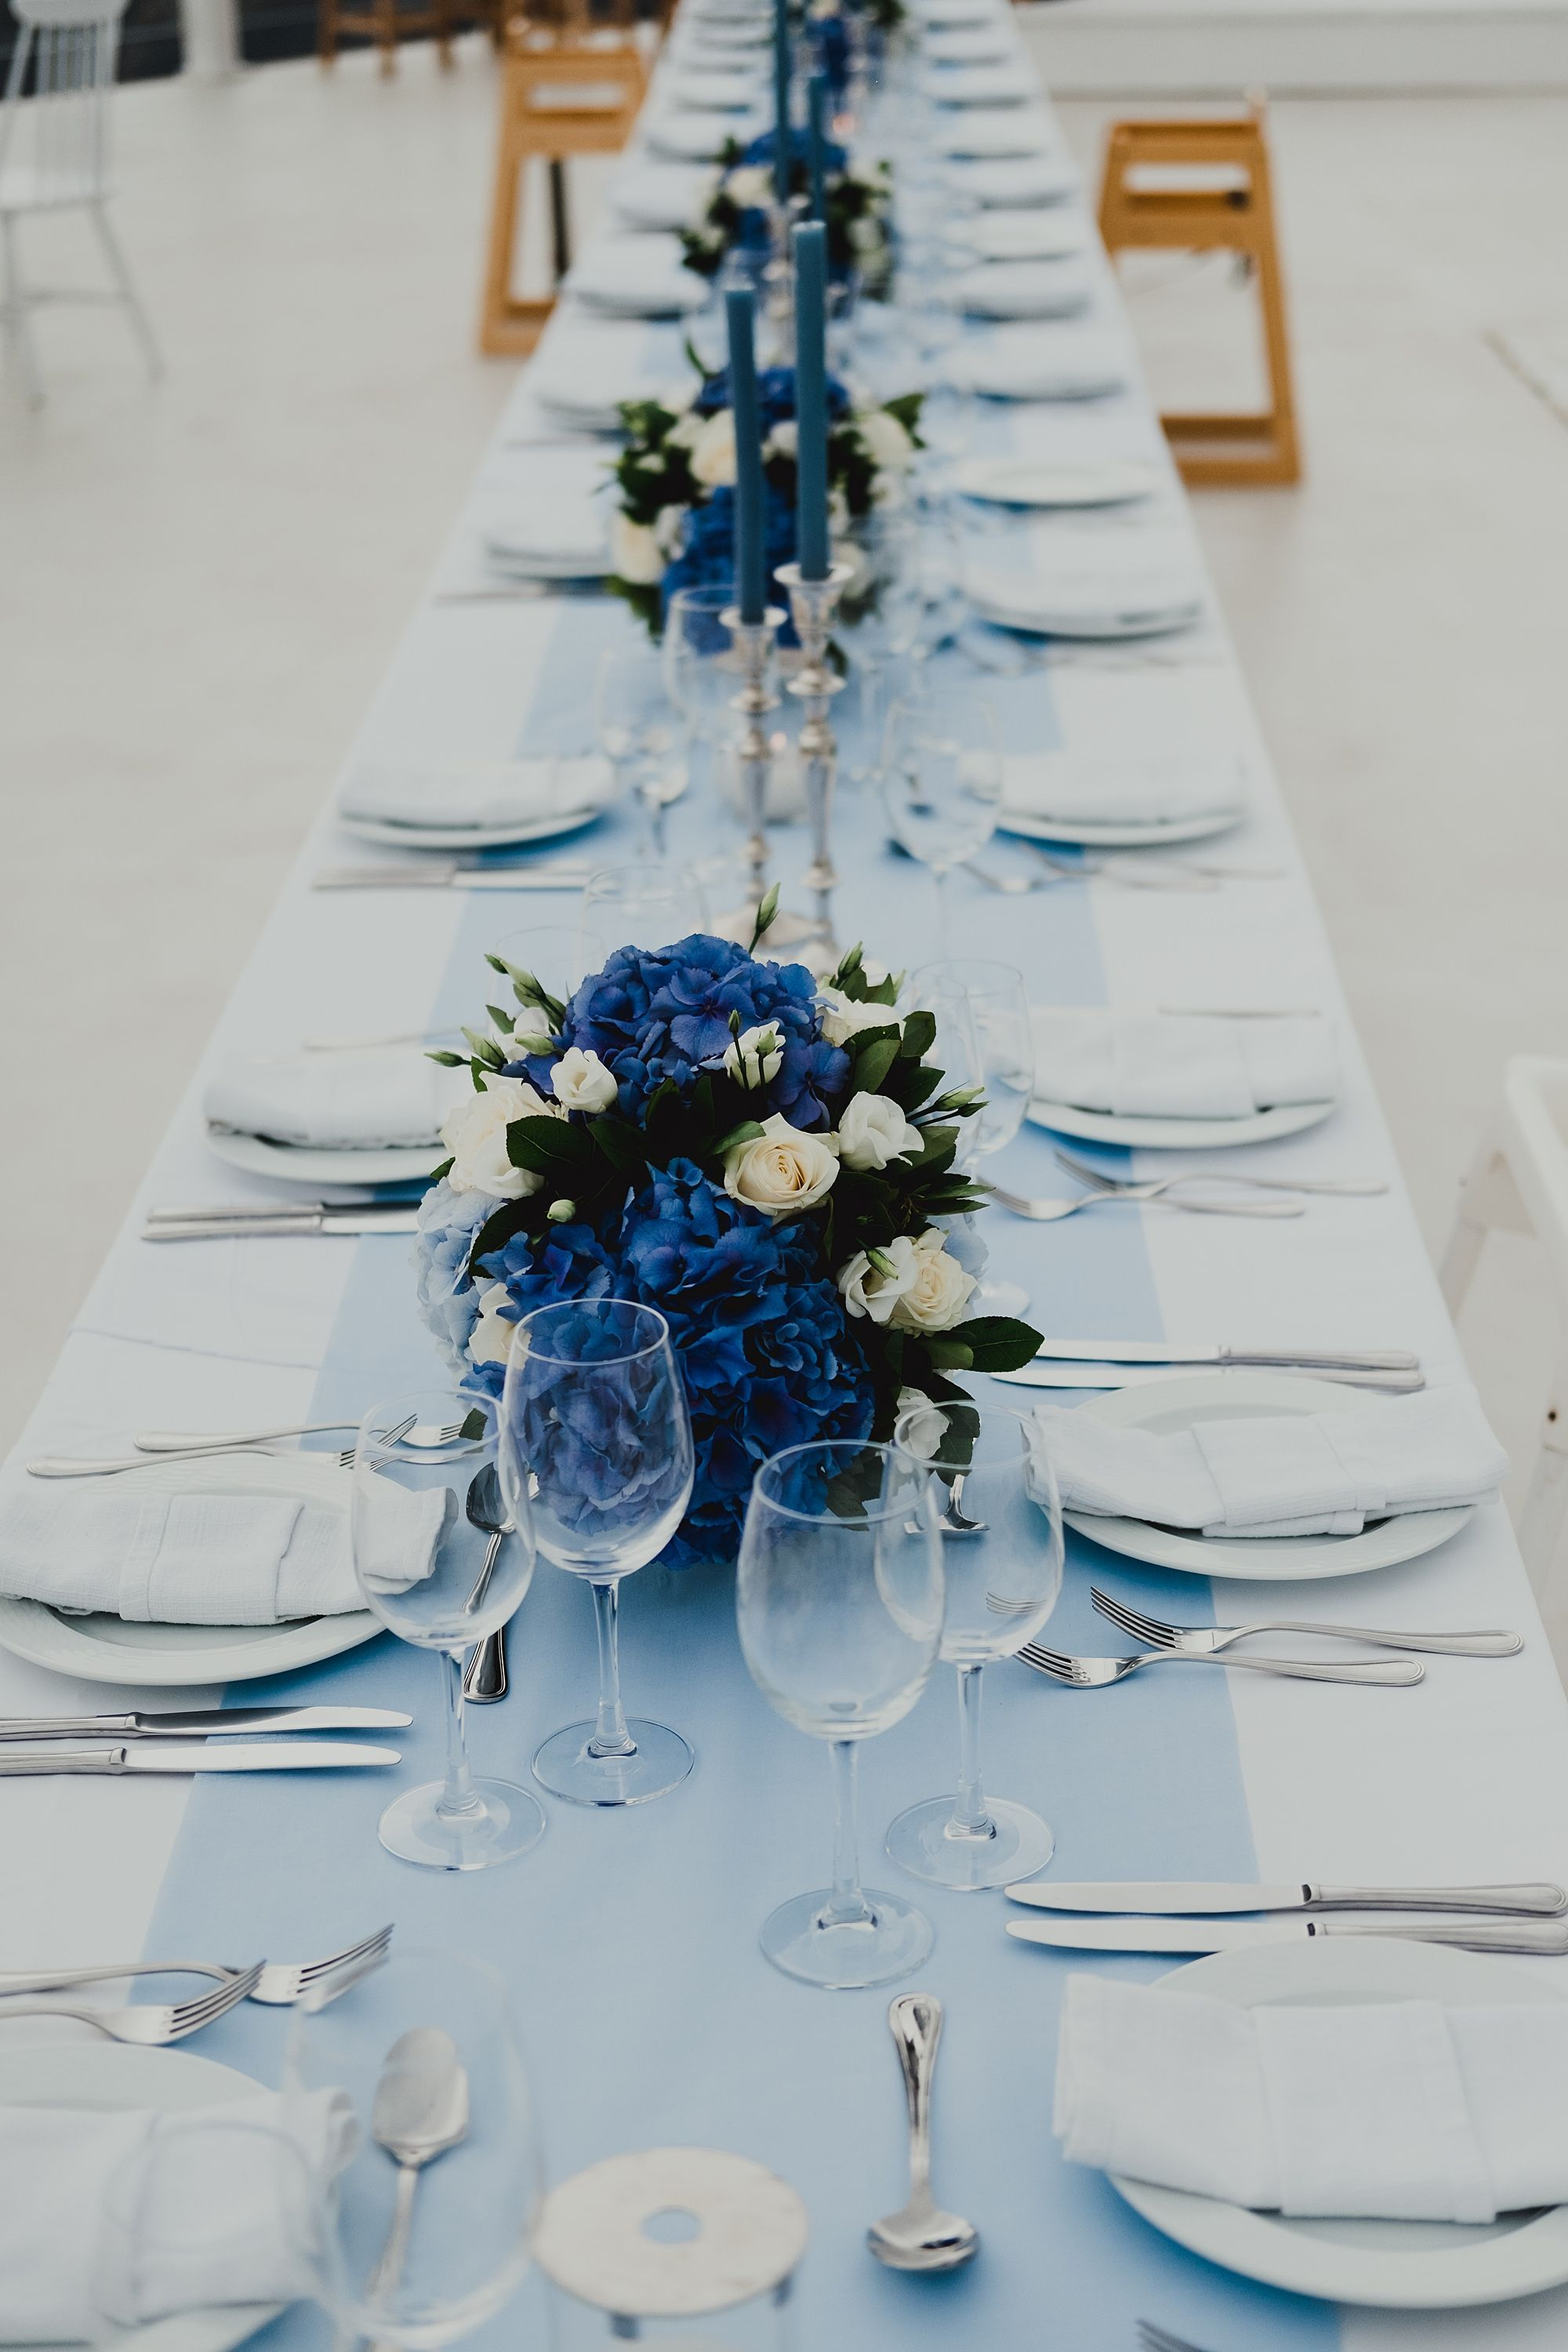 Wedding Decor Ideas Blue And White Table Setting Inspiration For An Outdoor Wed Wedding Table Decorations Blue Blue Wedding Decorations Wedding Table Settings